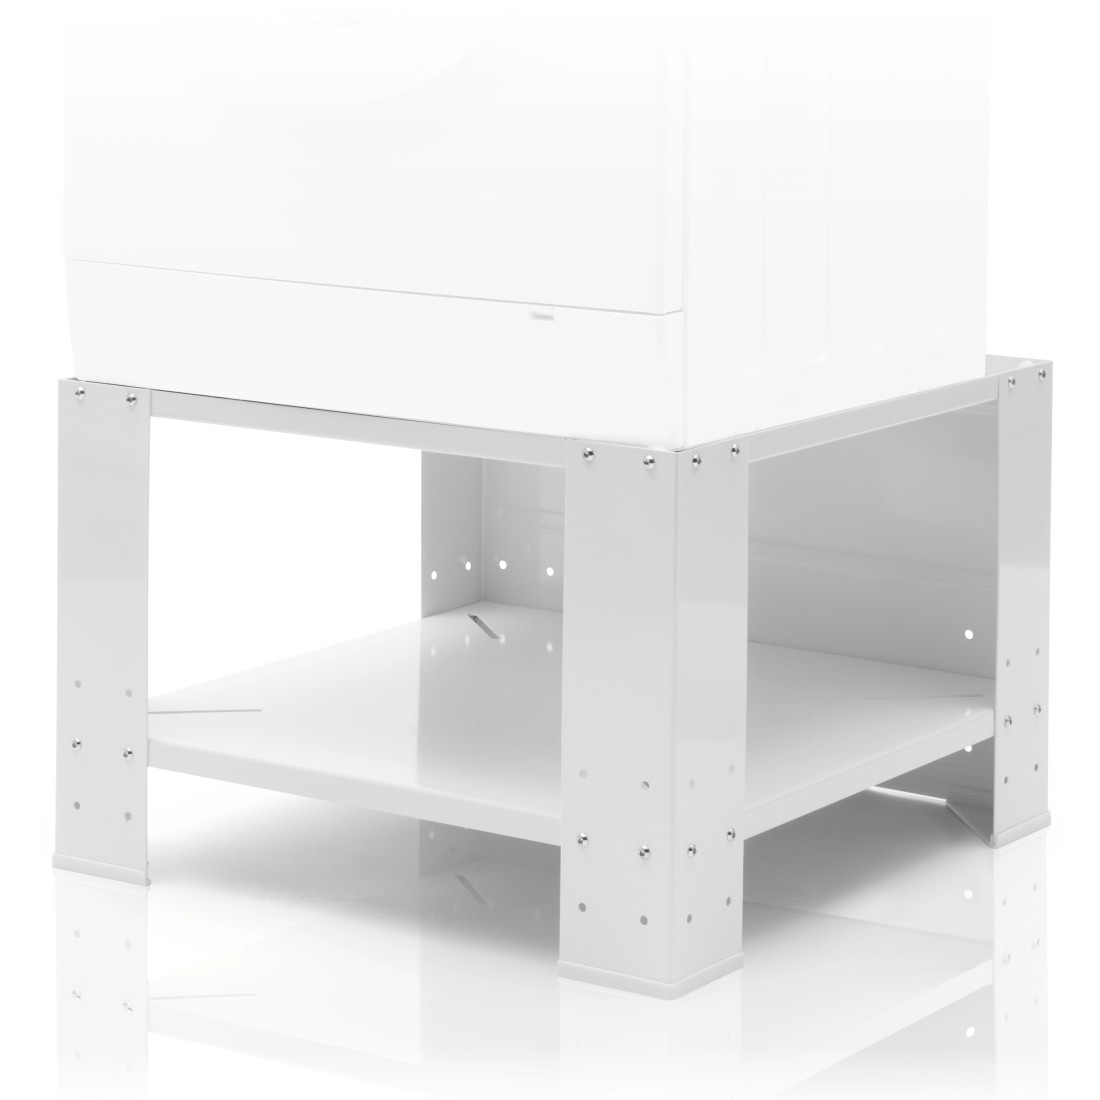 awx High-Res Appliance - Xavax, Universal Stand with Base Division for Washing Machine and Dryer